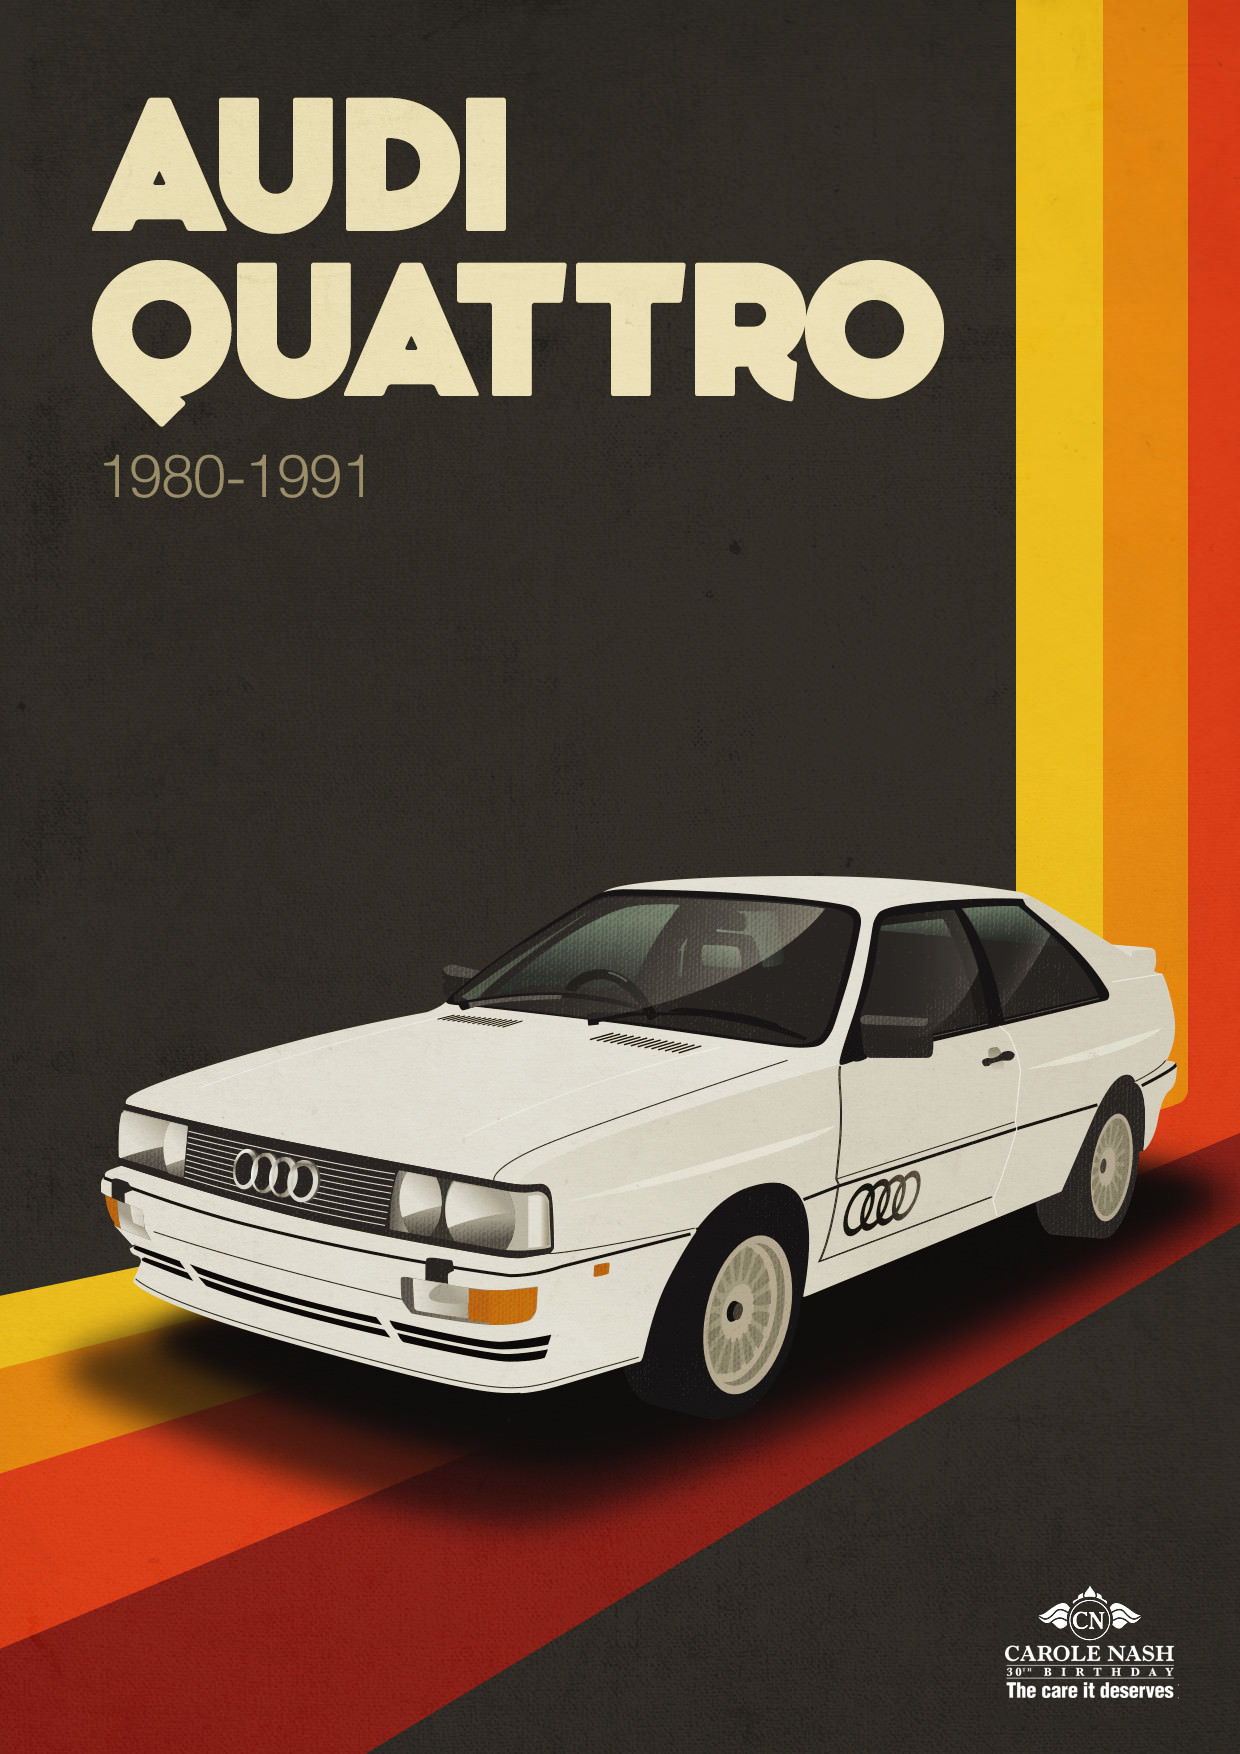 Retro Audi Quattro Illustration/Poster